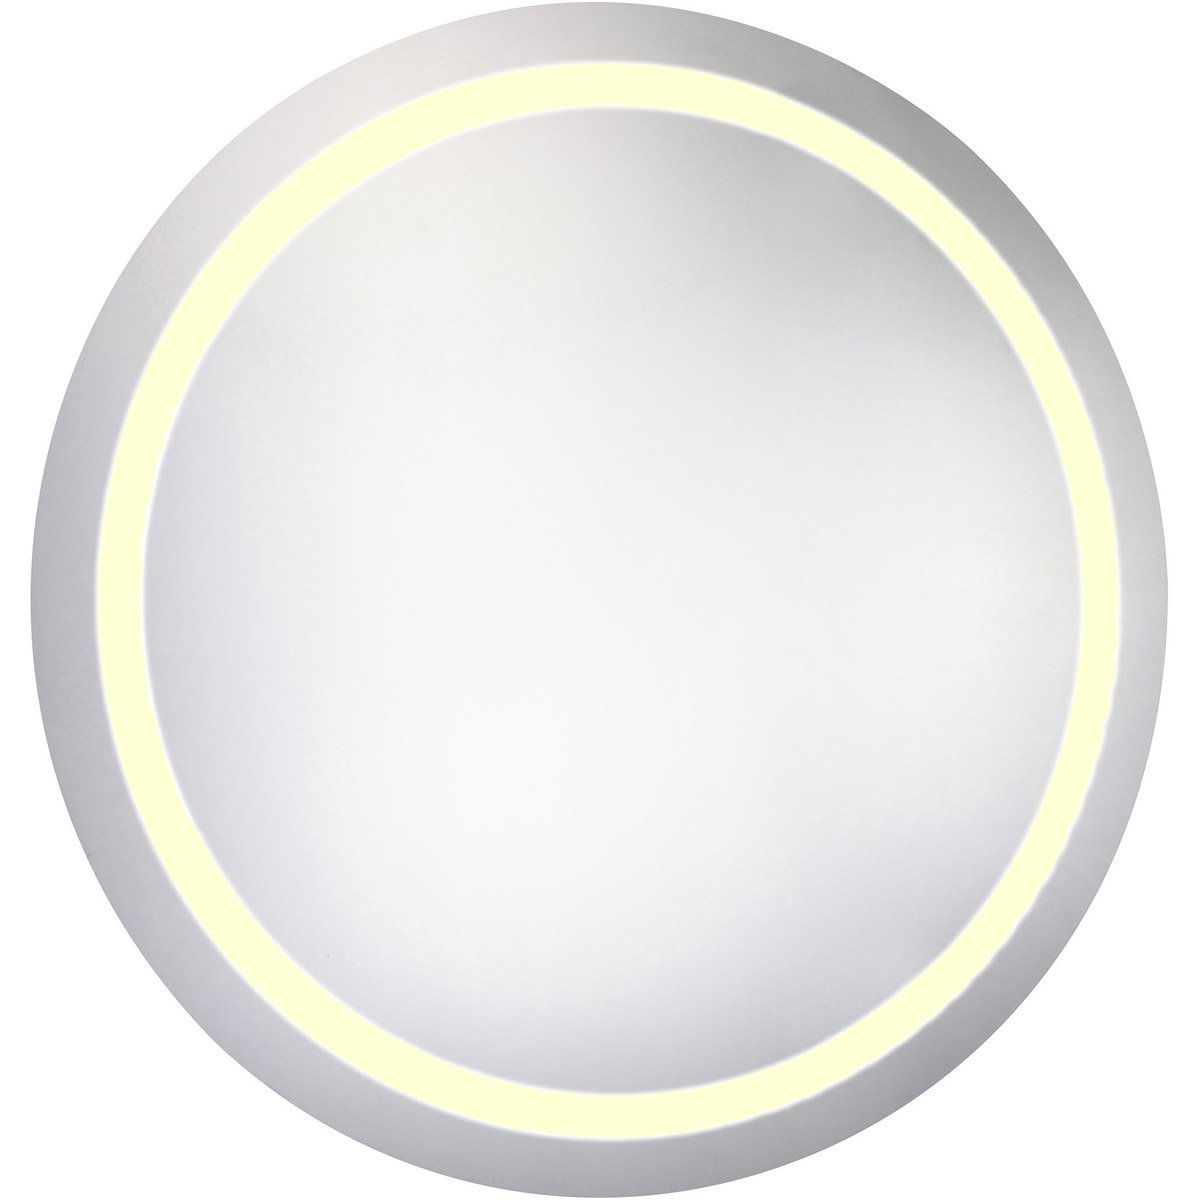 Nova 36 X 36 Hardwired Led Wall Mirror - Glossy White Finish (Mre-6016) Led Mirror